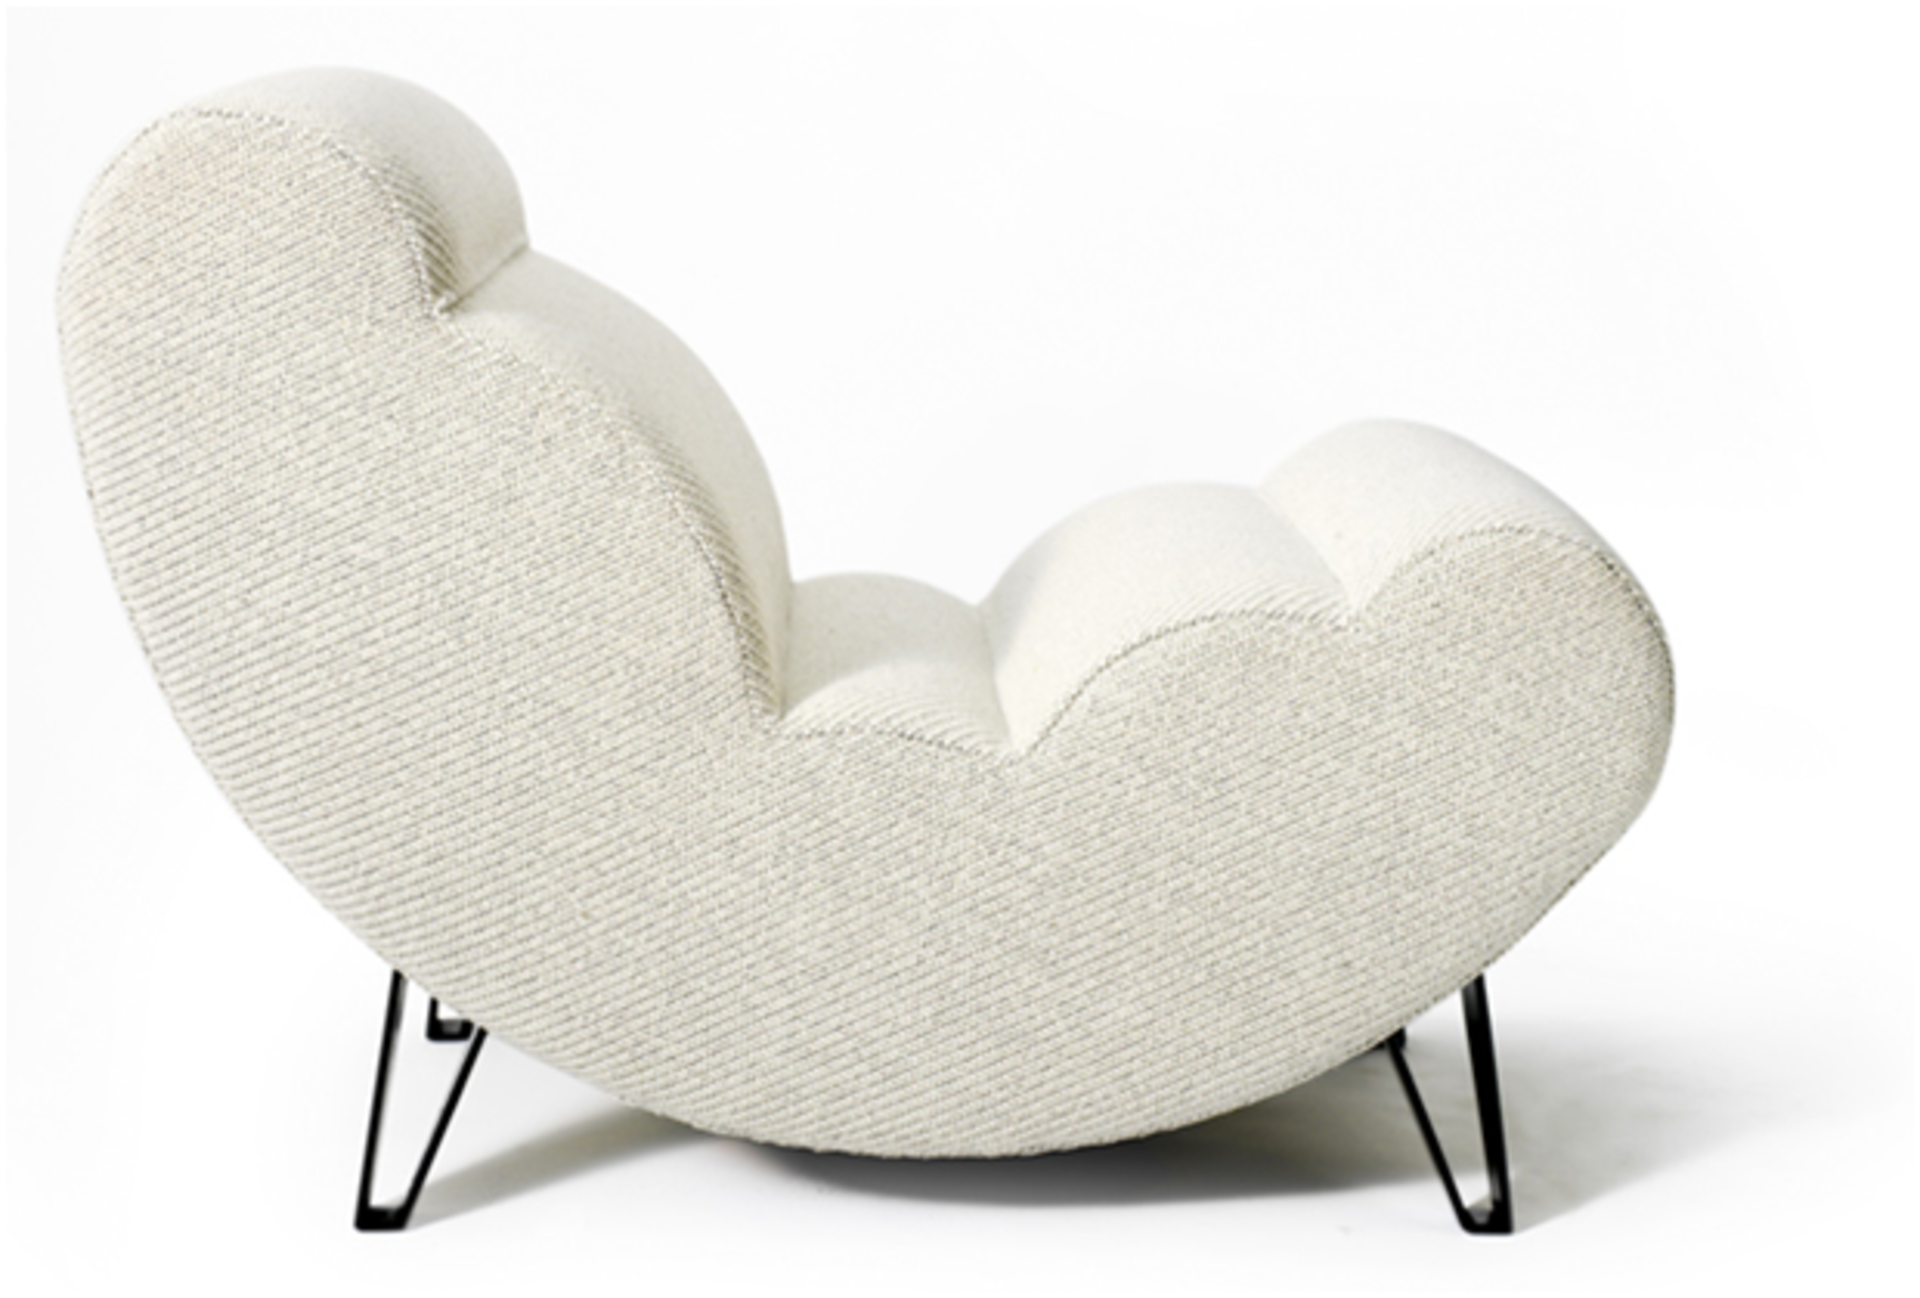 Cloud U0026ndash; An Upholstered Easy Chair By Wis Design